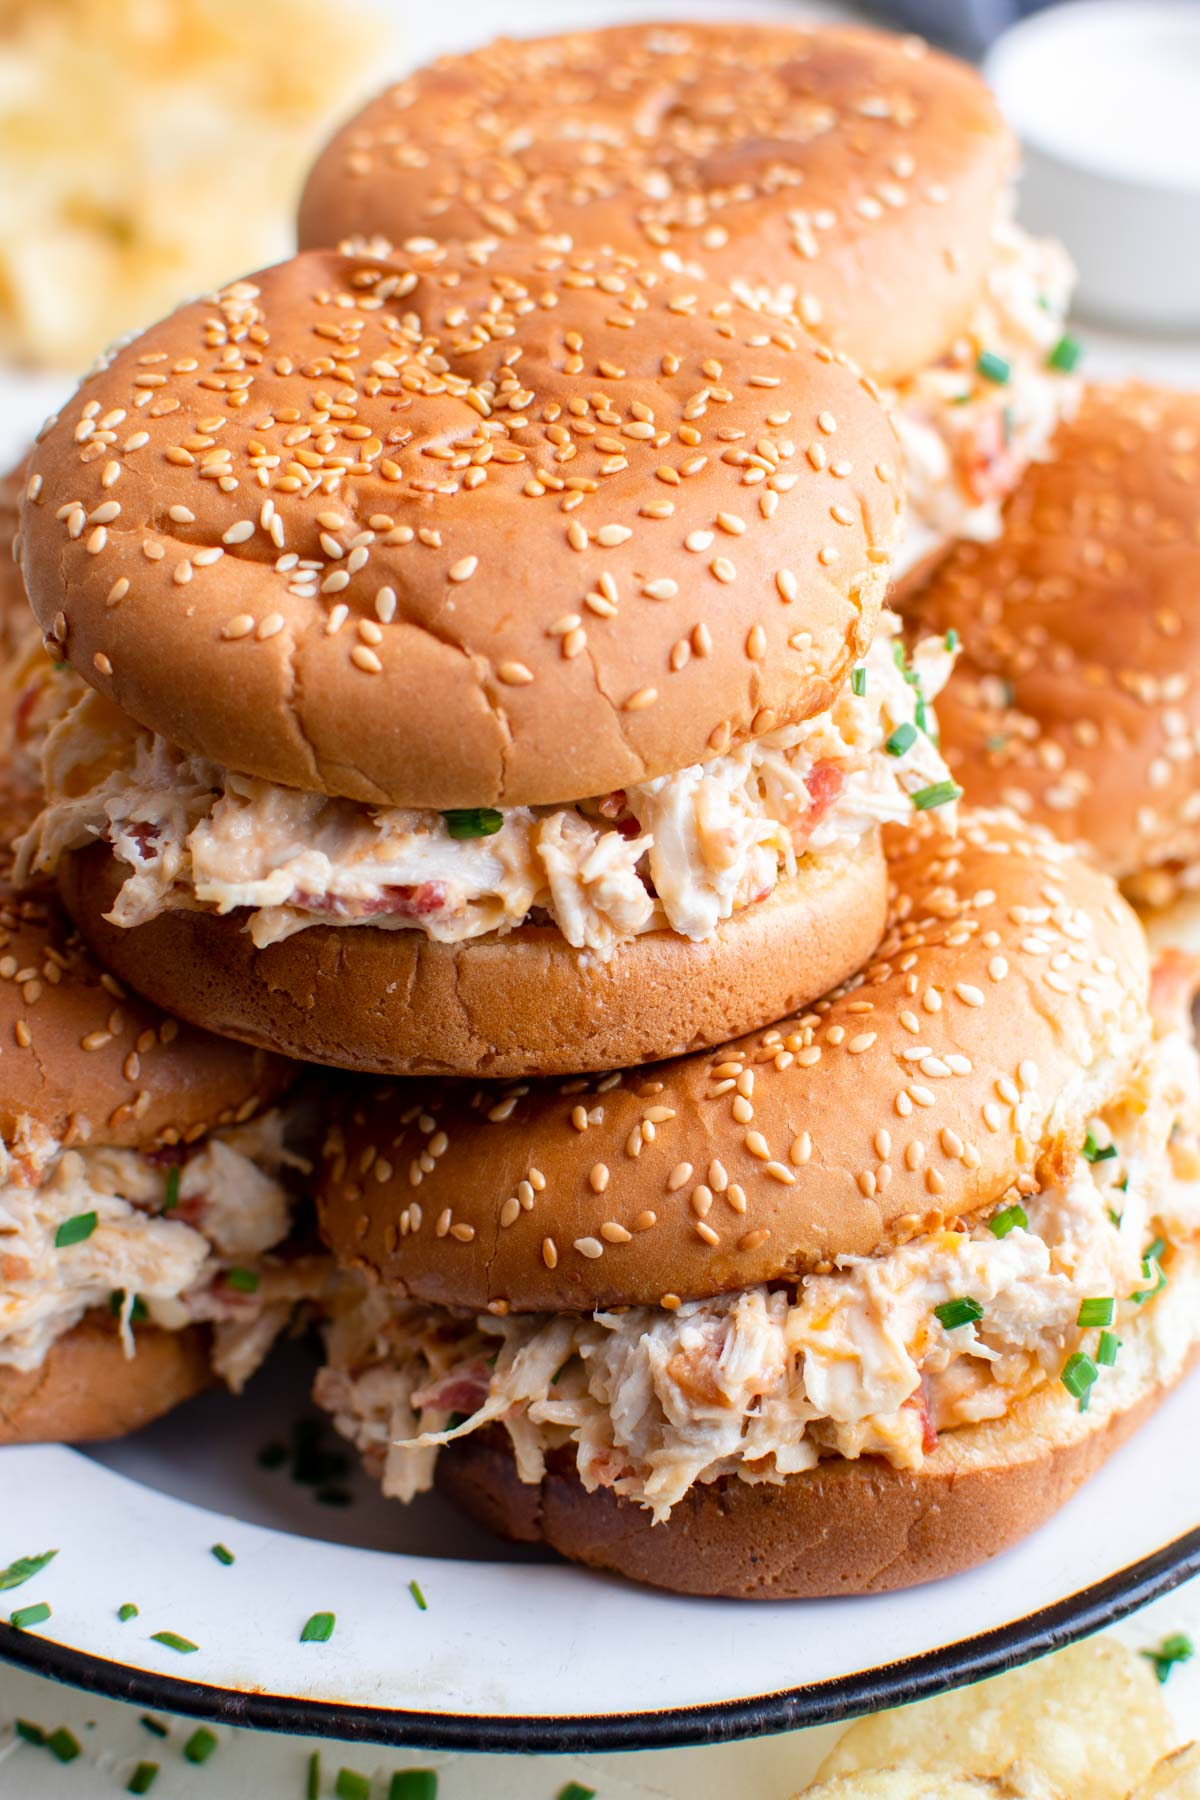 shredded chicken sandwiches with sesame seed buns, white plate, potato chips